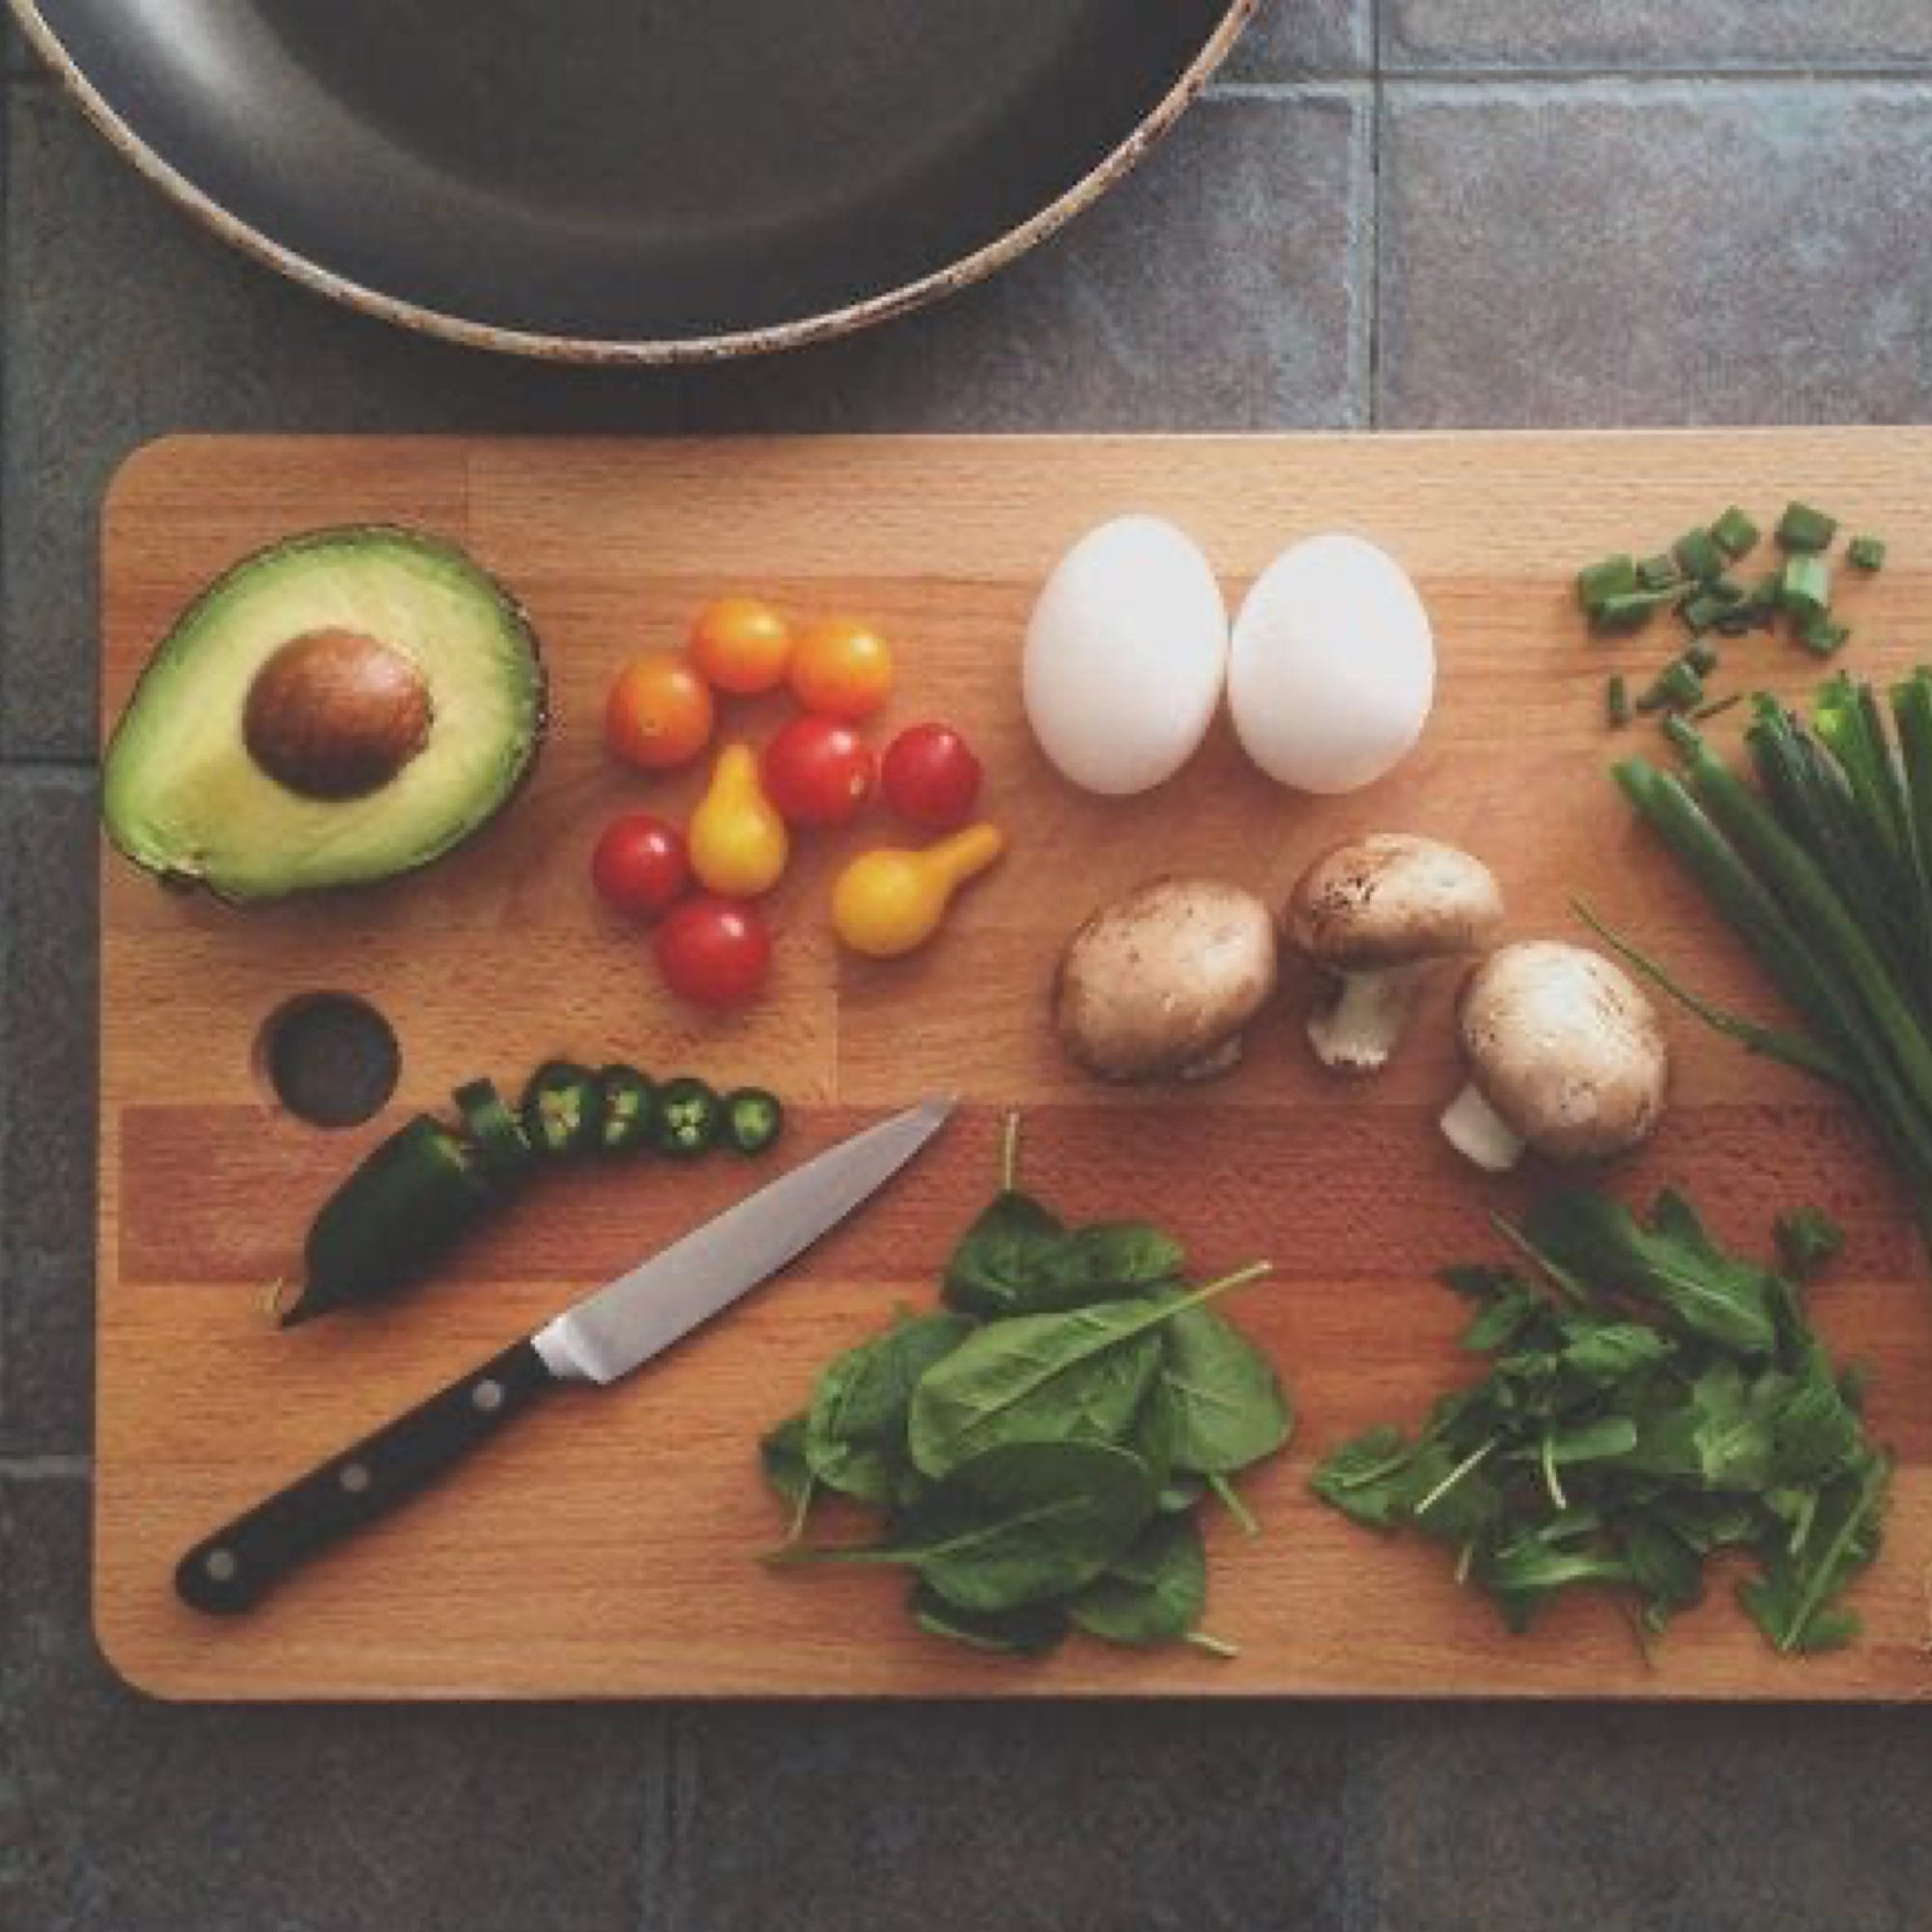 cutting board with food and knife